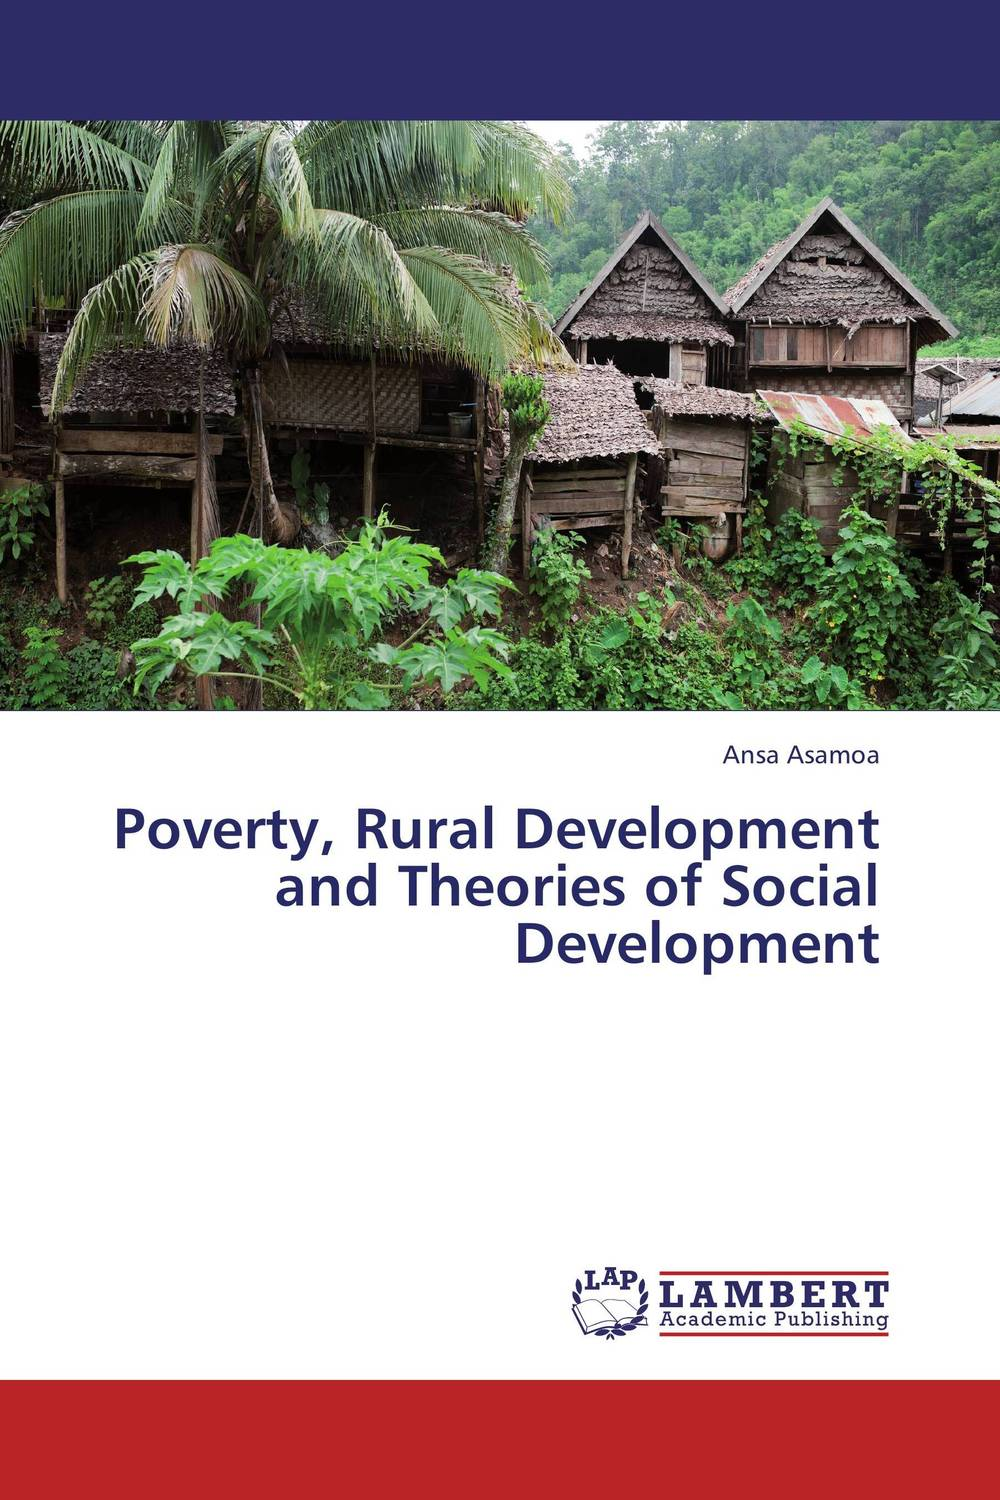 Poverty, Rural Development and Theories of Social Development